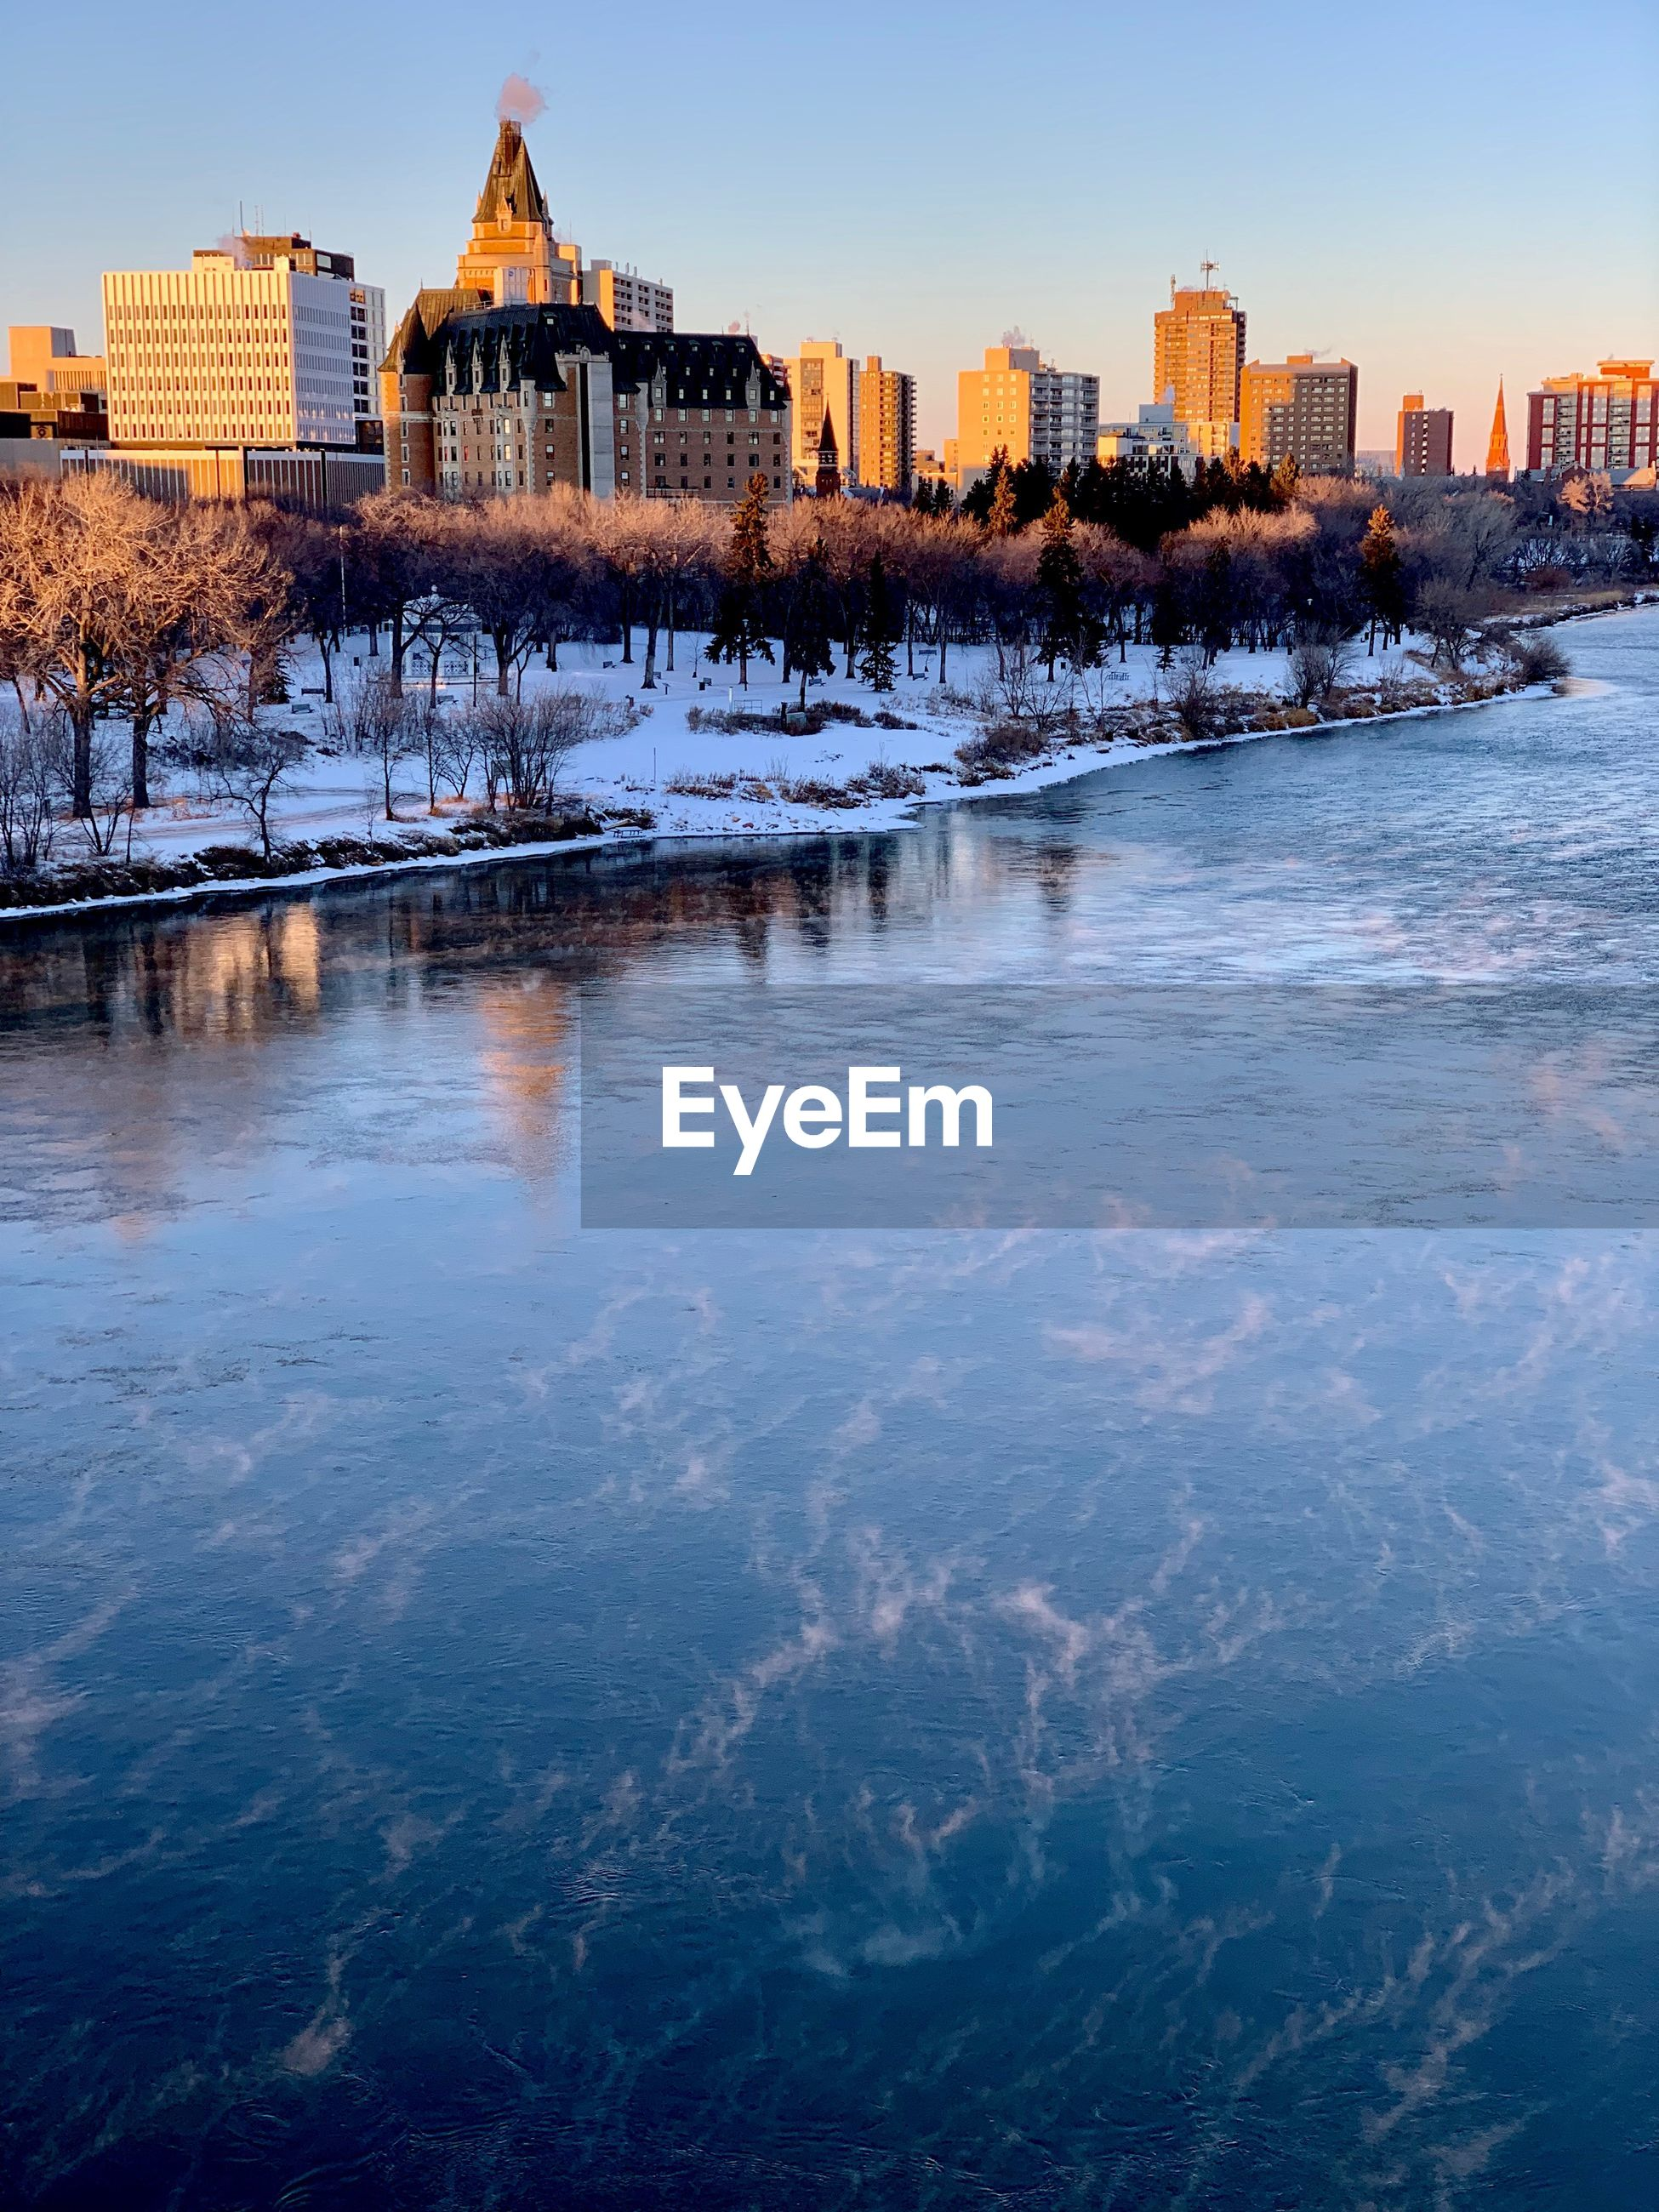 Frozen river by buildings against clear sky during sunset